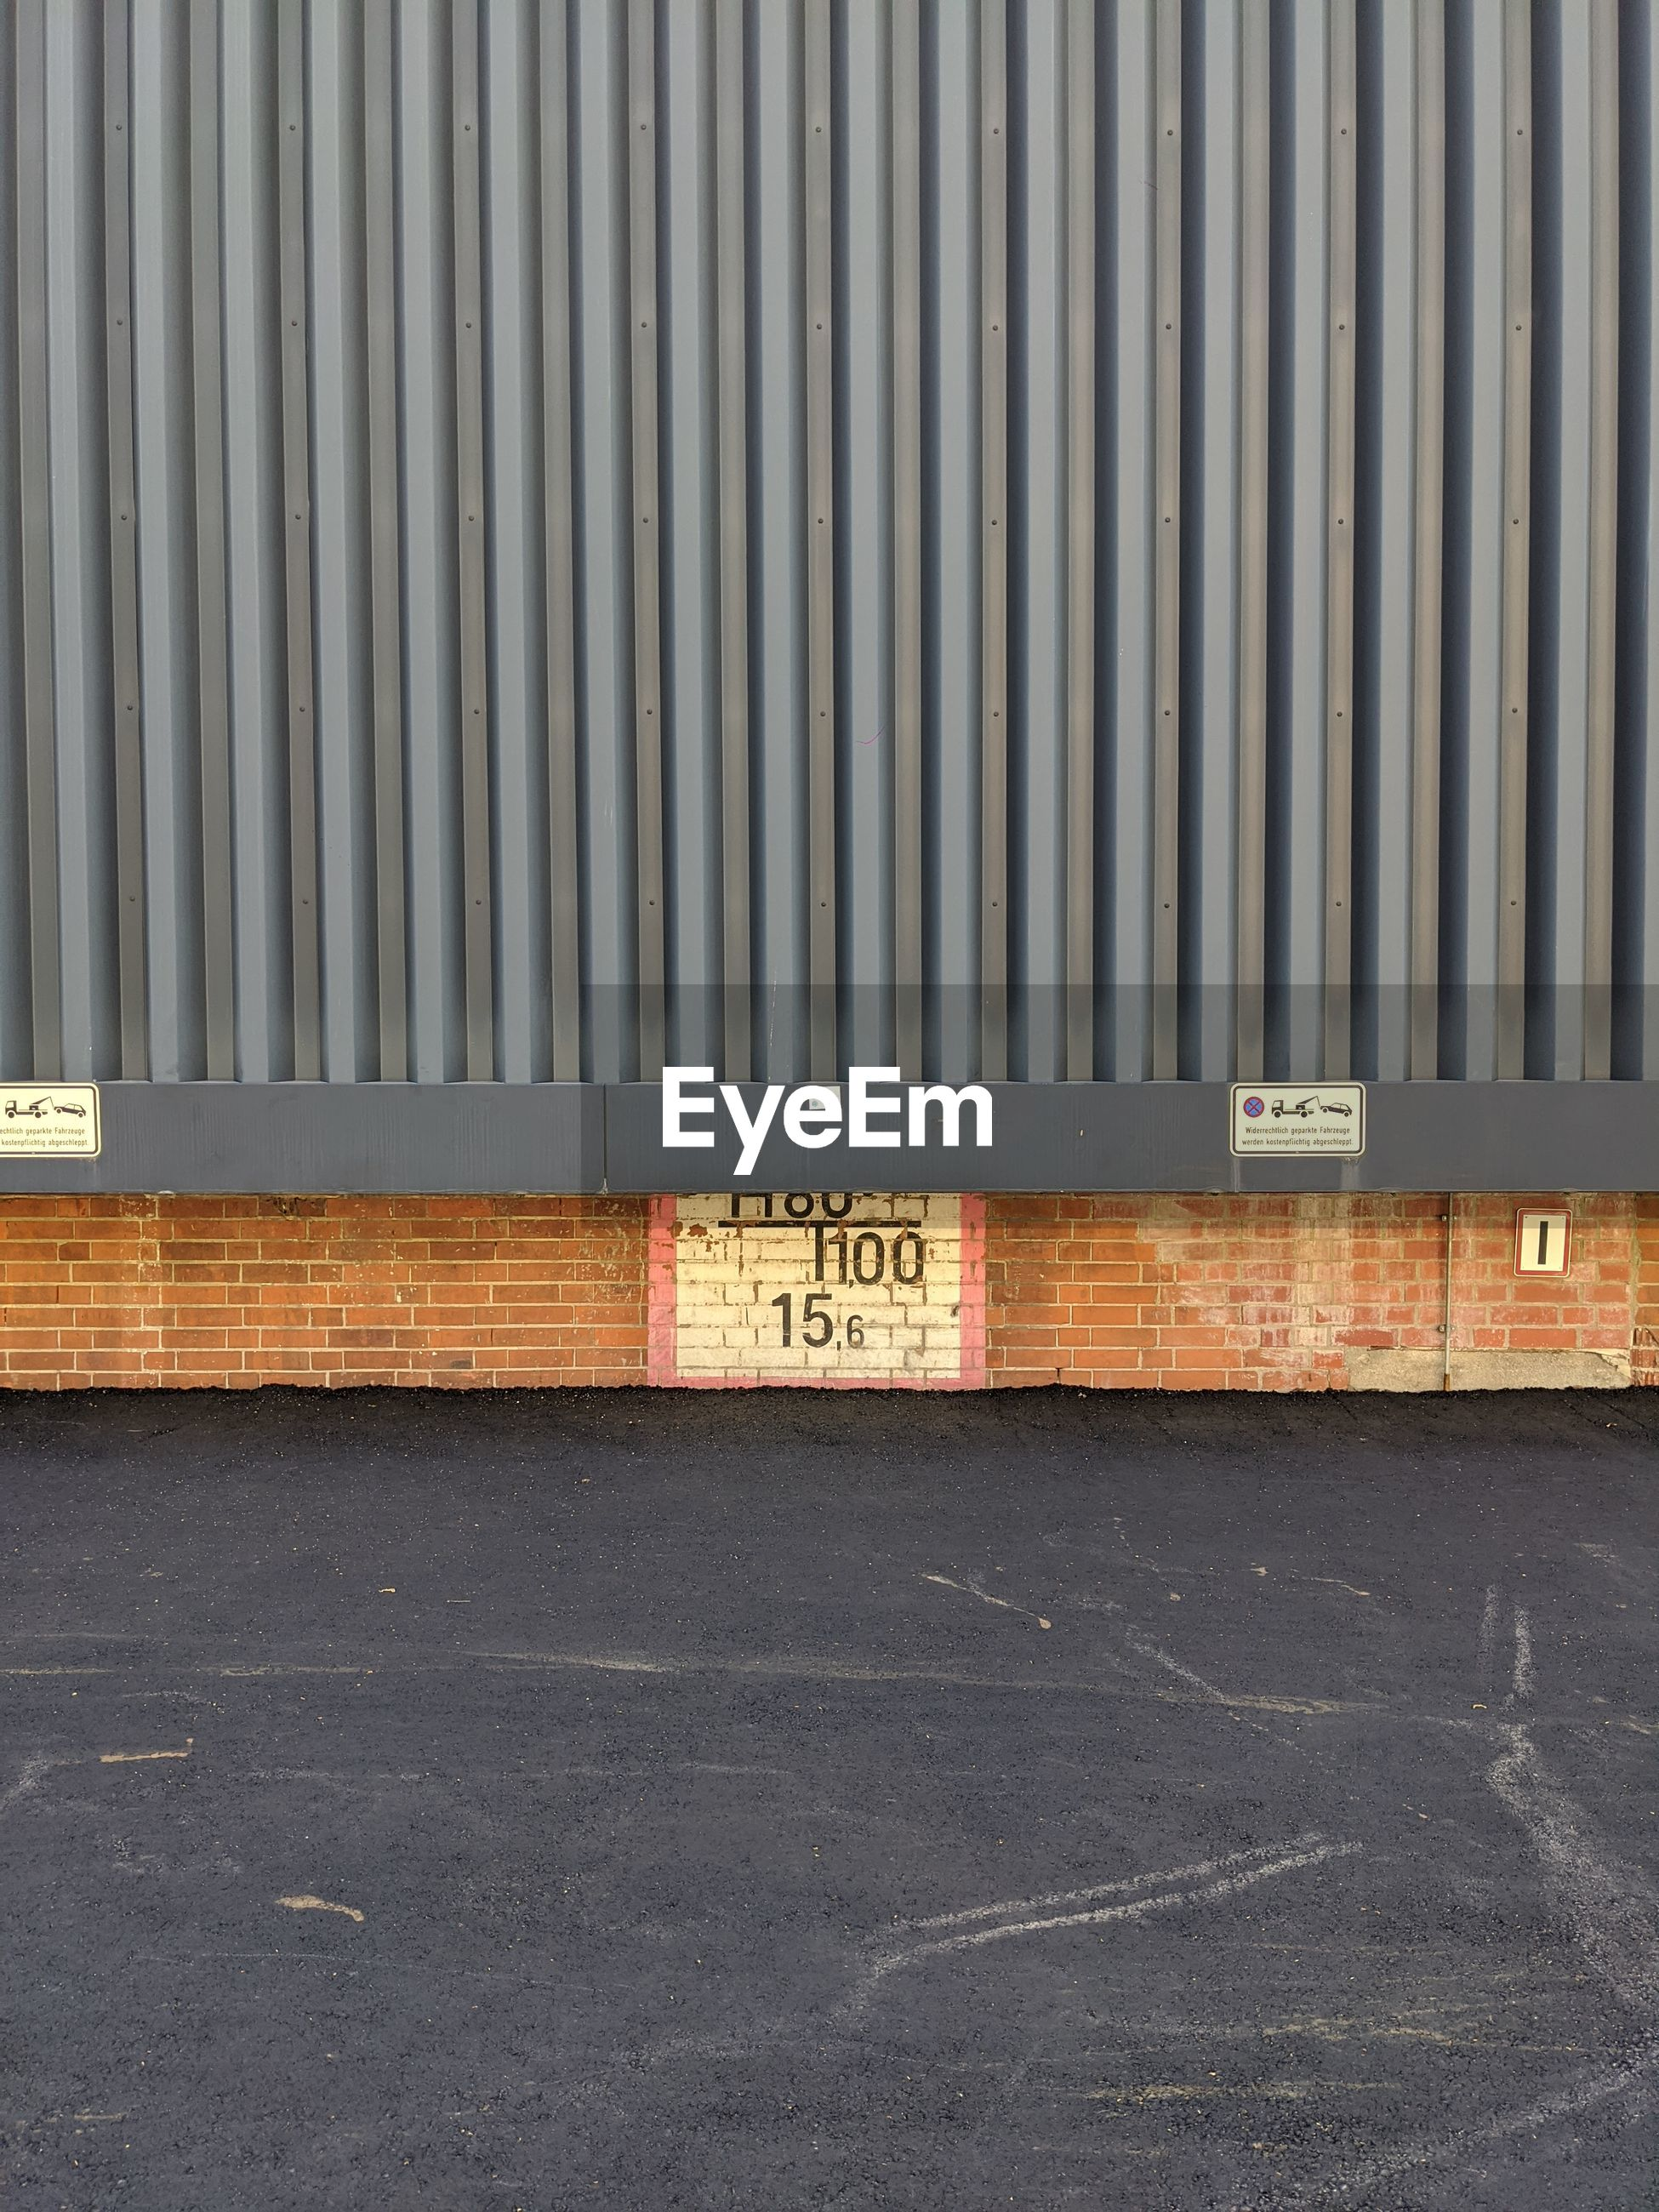 TEXT ON WALL BY STREET